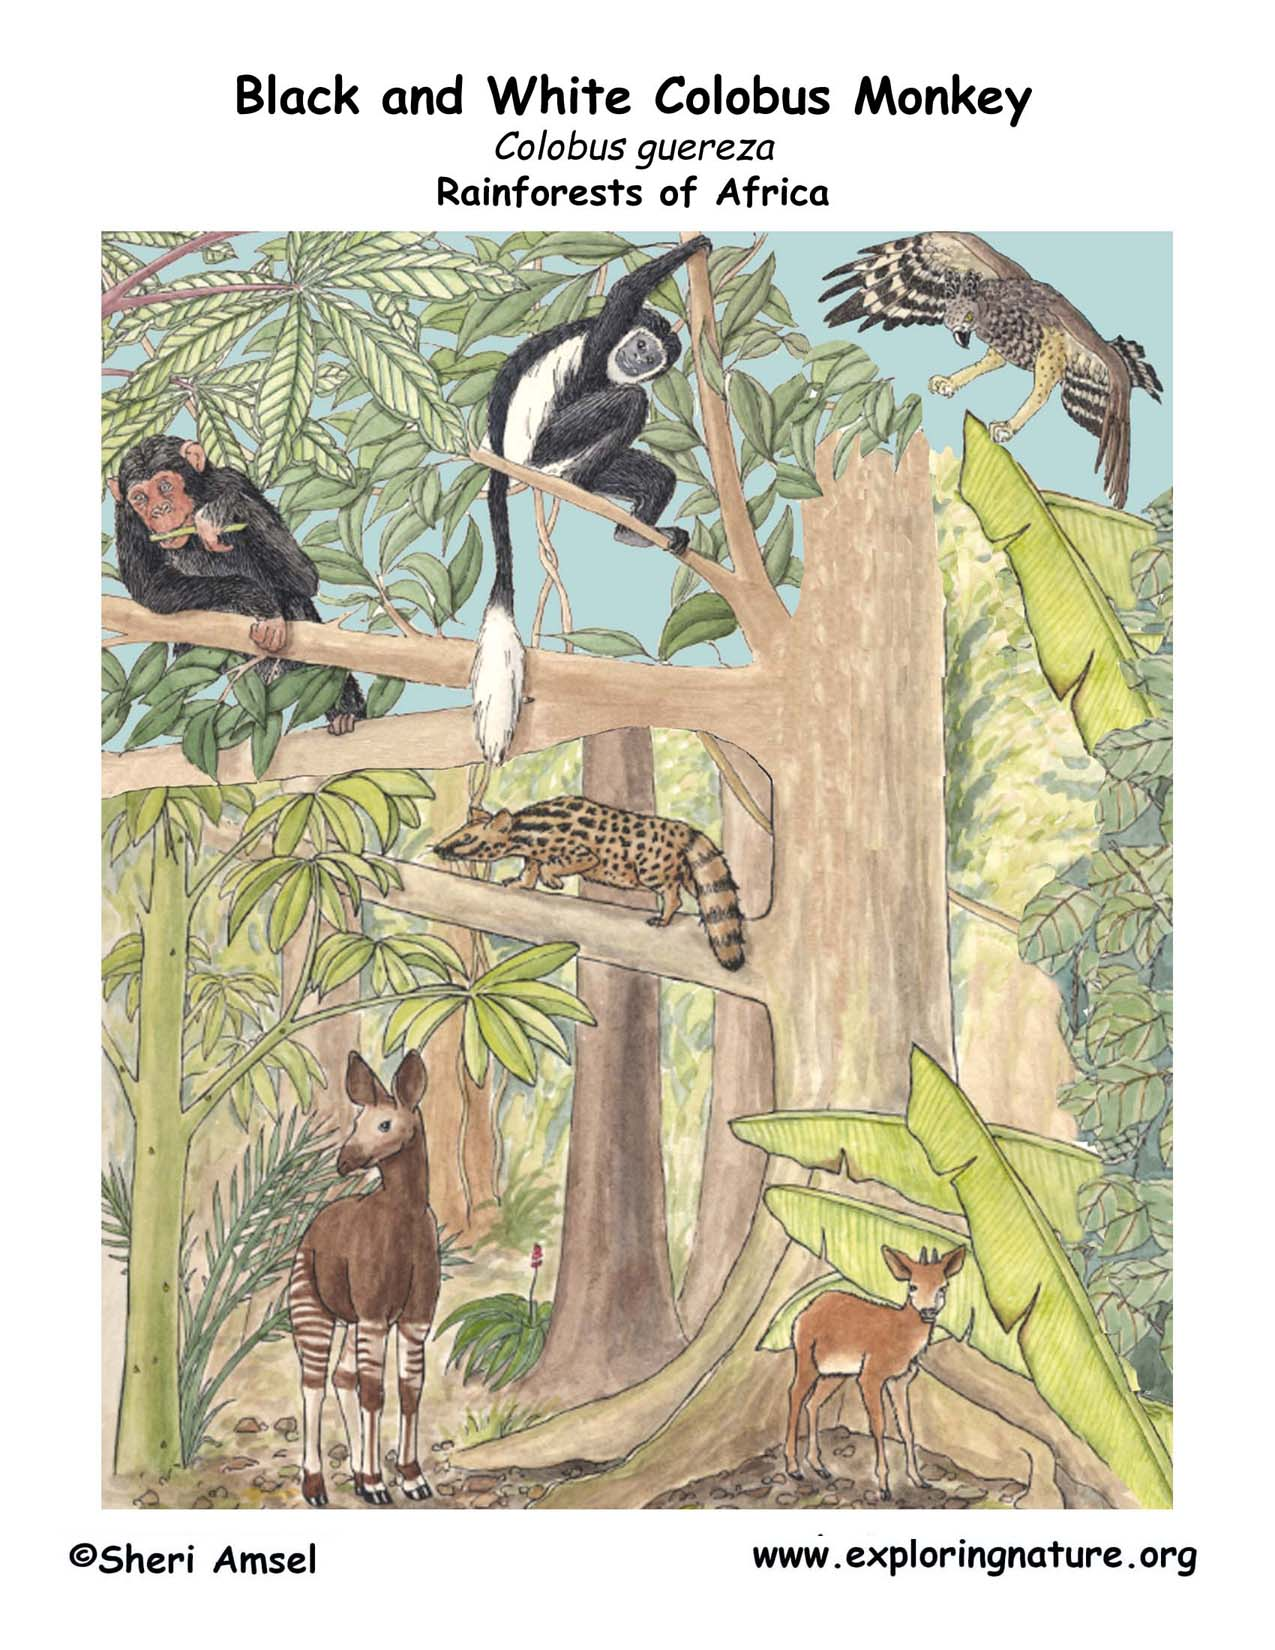 Download Hi Res Color Diagram Monkey Black And White Colobus